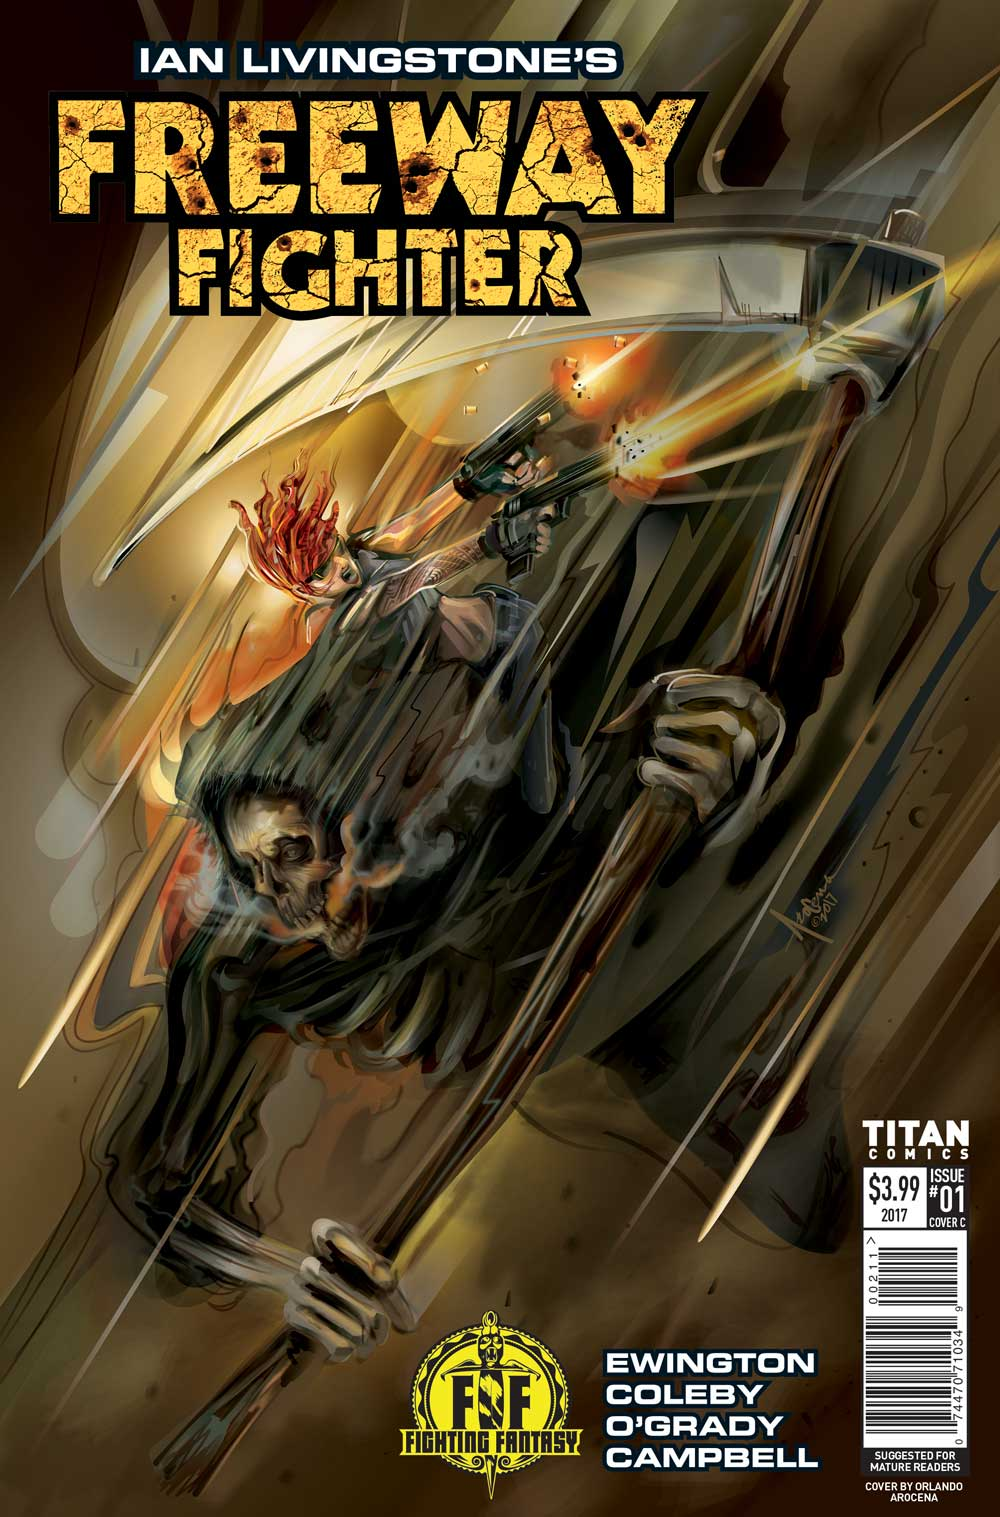 FREEWAY-FIGHTER-ISSUE-1_COVER_C_ORLANDO_AROCENA.jpg